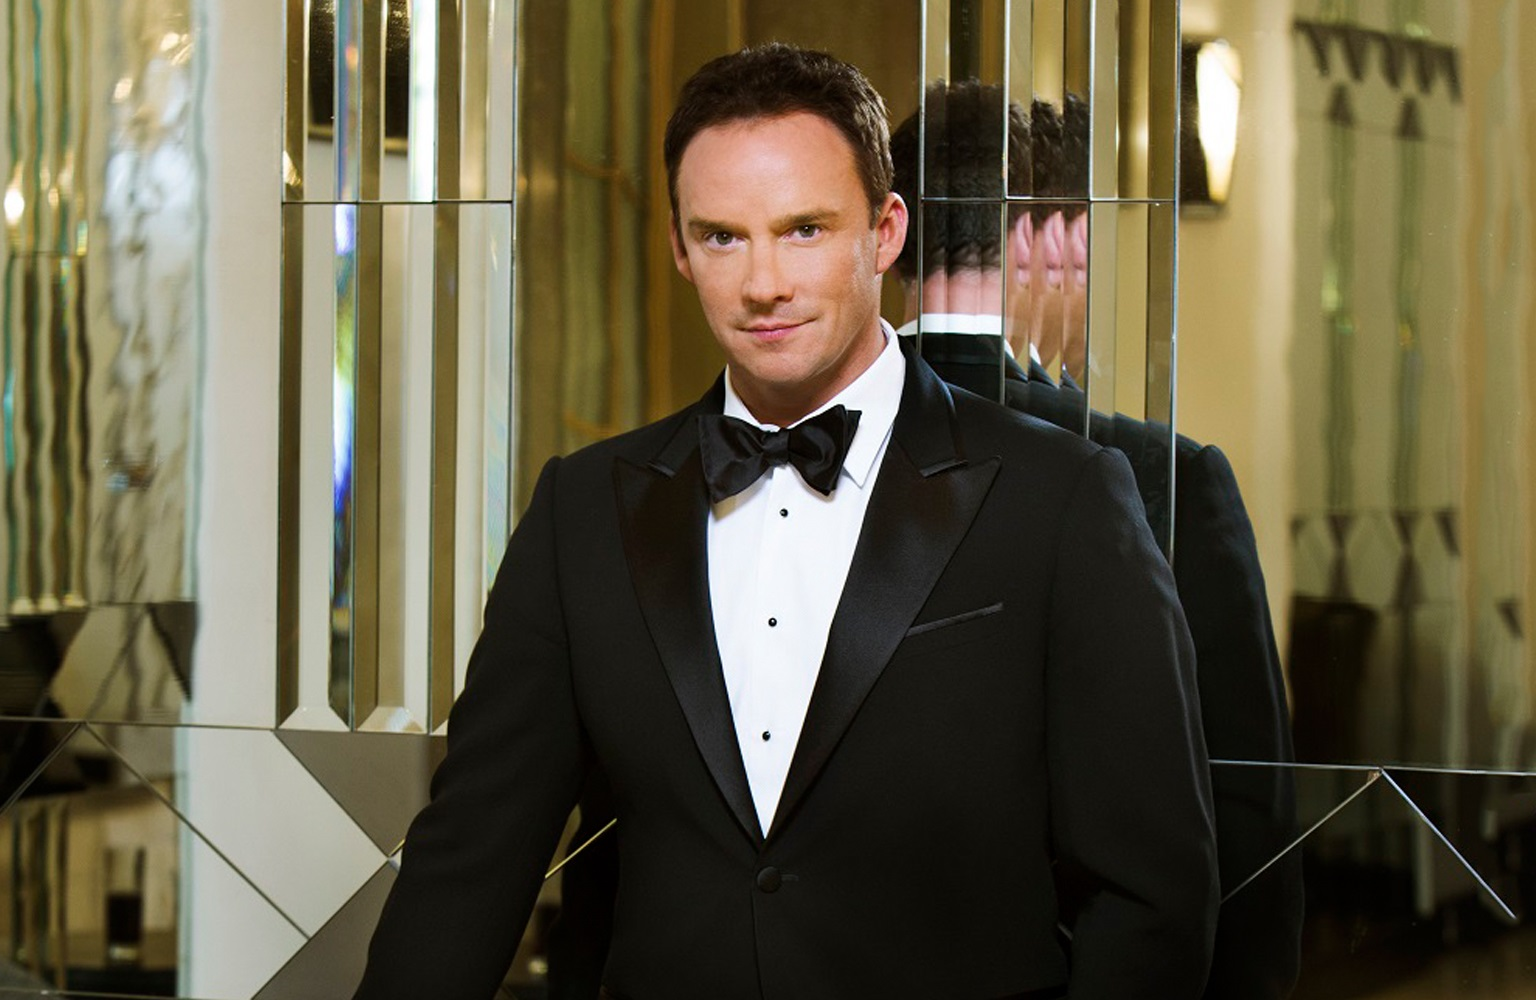 Discover 'The Voice' Russell Watson as we profile the singer